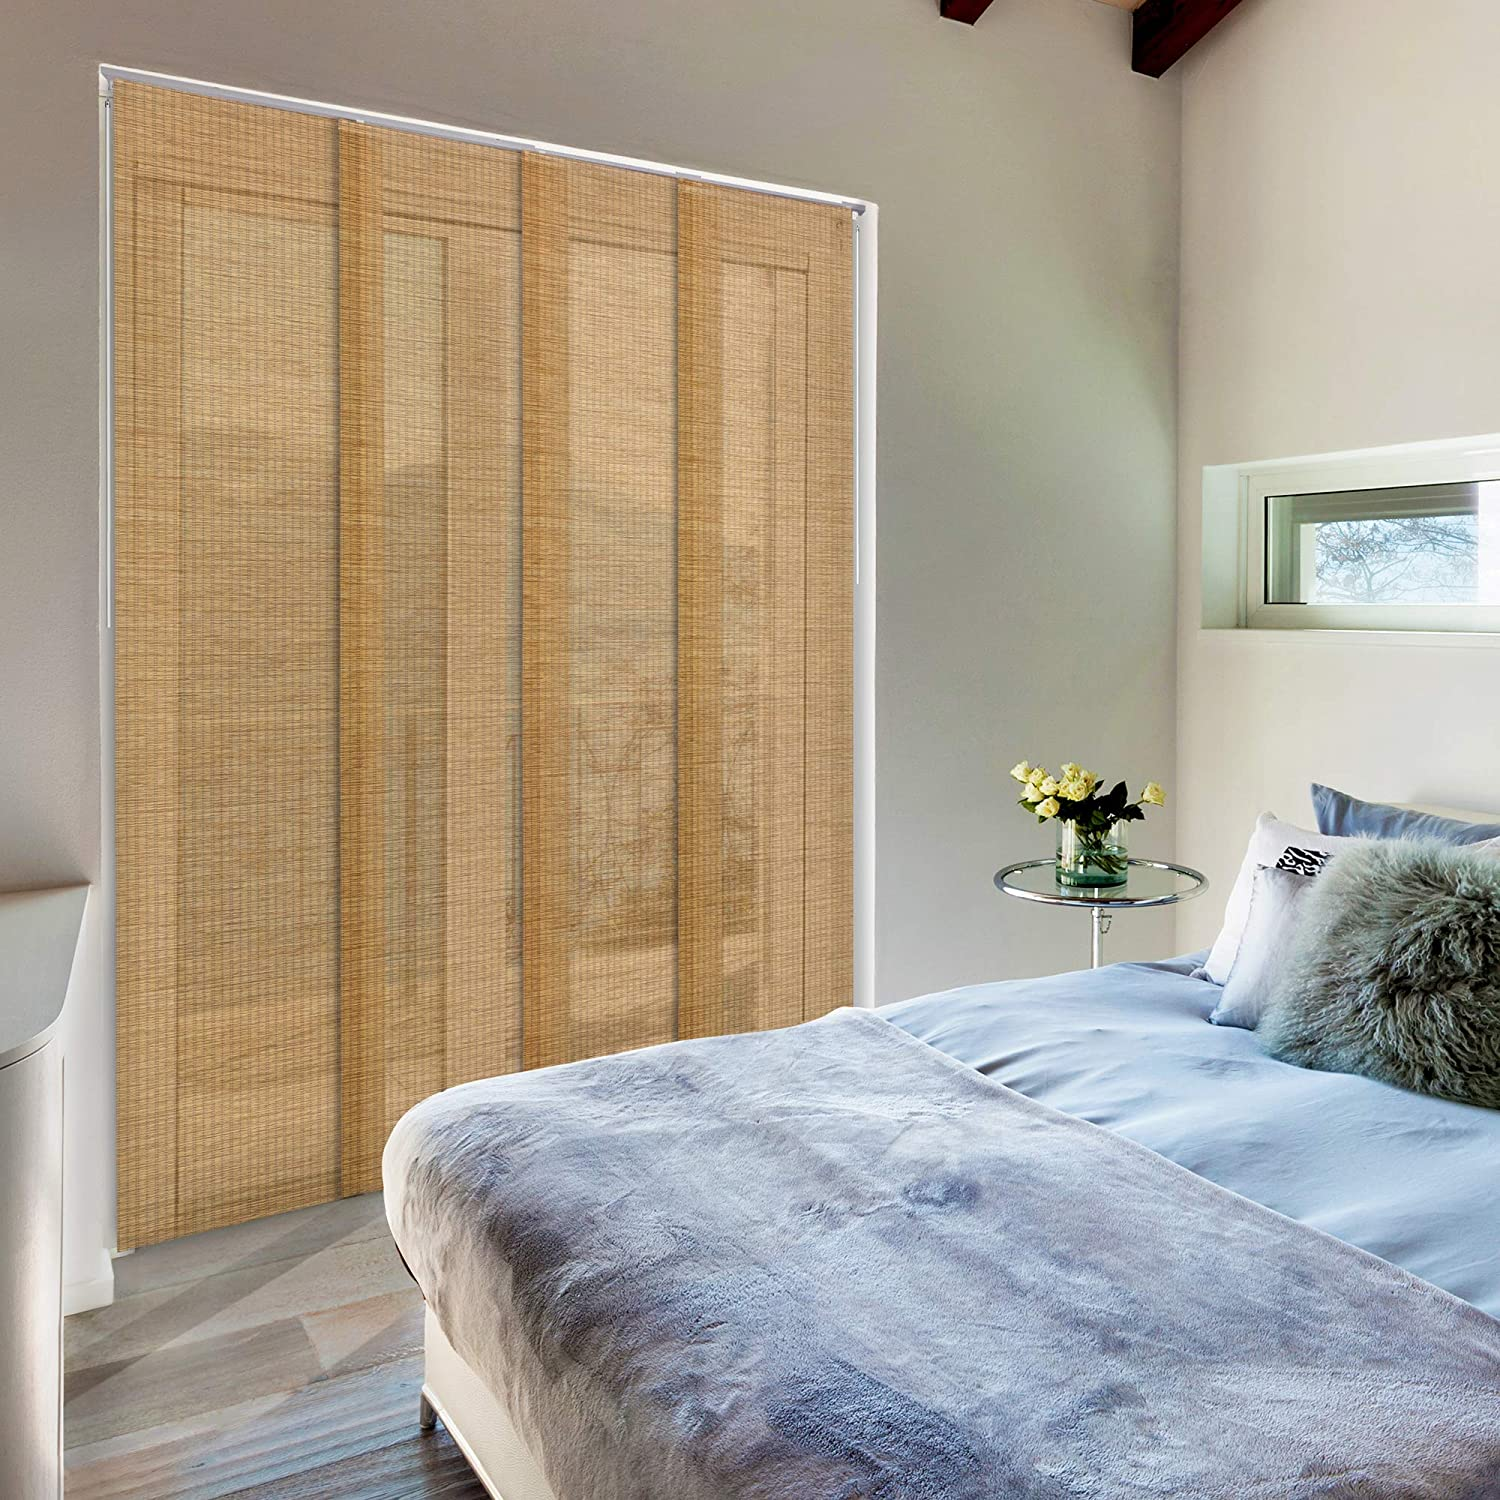 GoDear Design Deluxe Adjustable Free Attention brand shipping anywhere in the nation Sliding Blind Panel 45.8